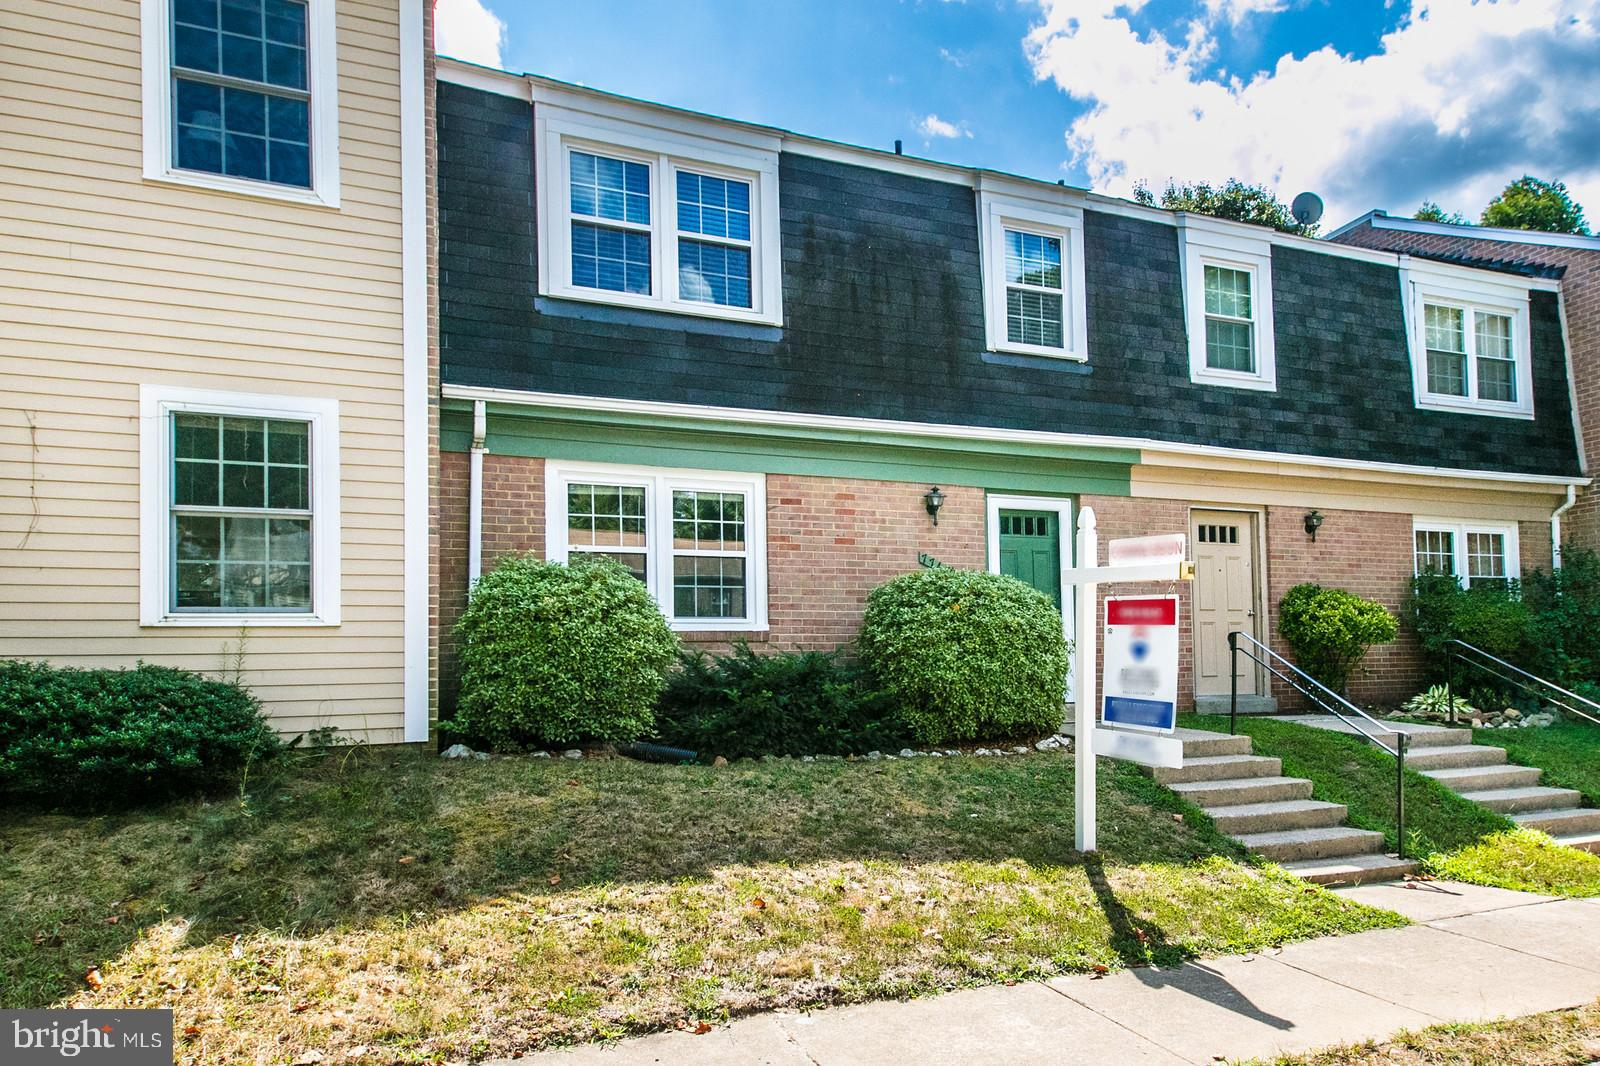 Excellently located 3-bedroom, 2 bath townhouse. Beautiful fenced in back yard and excellent amenities. Pool, tennis, biking, and playgrounds. Bus stop is right on Rolling road. Beautiful cherry hardwoods on the main level and a newly updated kitchen with granite and stainless-steel appliances. New carpet upstairs. Partially remodeled bathrooms and recess lighting in most of the rooms. Lots of attic storage and nearby visitor parking. Close to shopping, Belvoir North, and 6 miles from Franconia metro. HVAC, roof, and windows are all only a few years old.